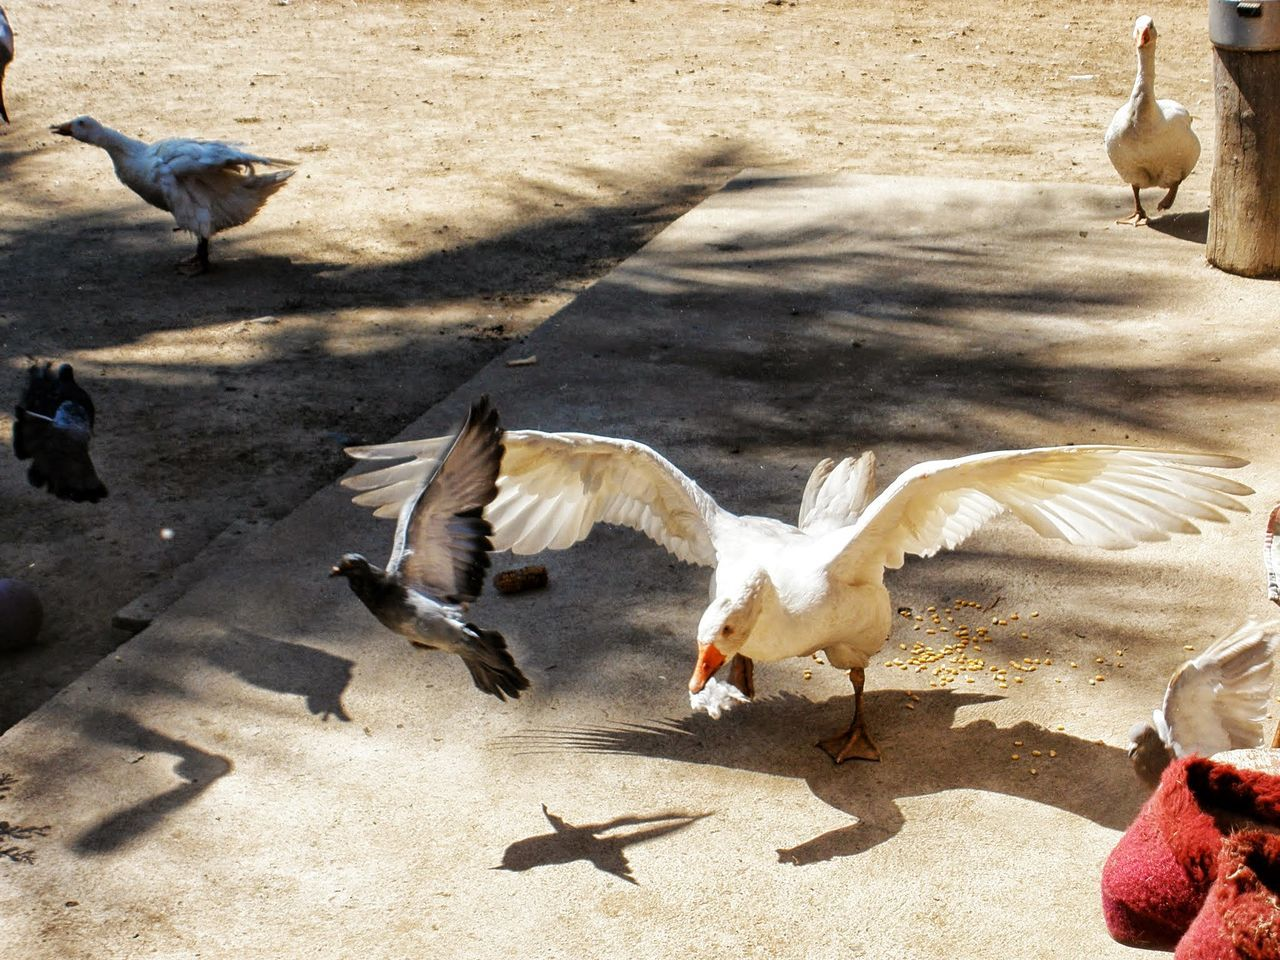 bird, animal themes, animals in the wild, animal wildlife, spread wings, shadow, sunlight, flying, day, nature, flapping, no people, outdoors, large group of animals, goose, motion